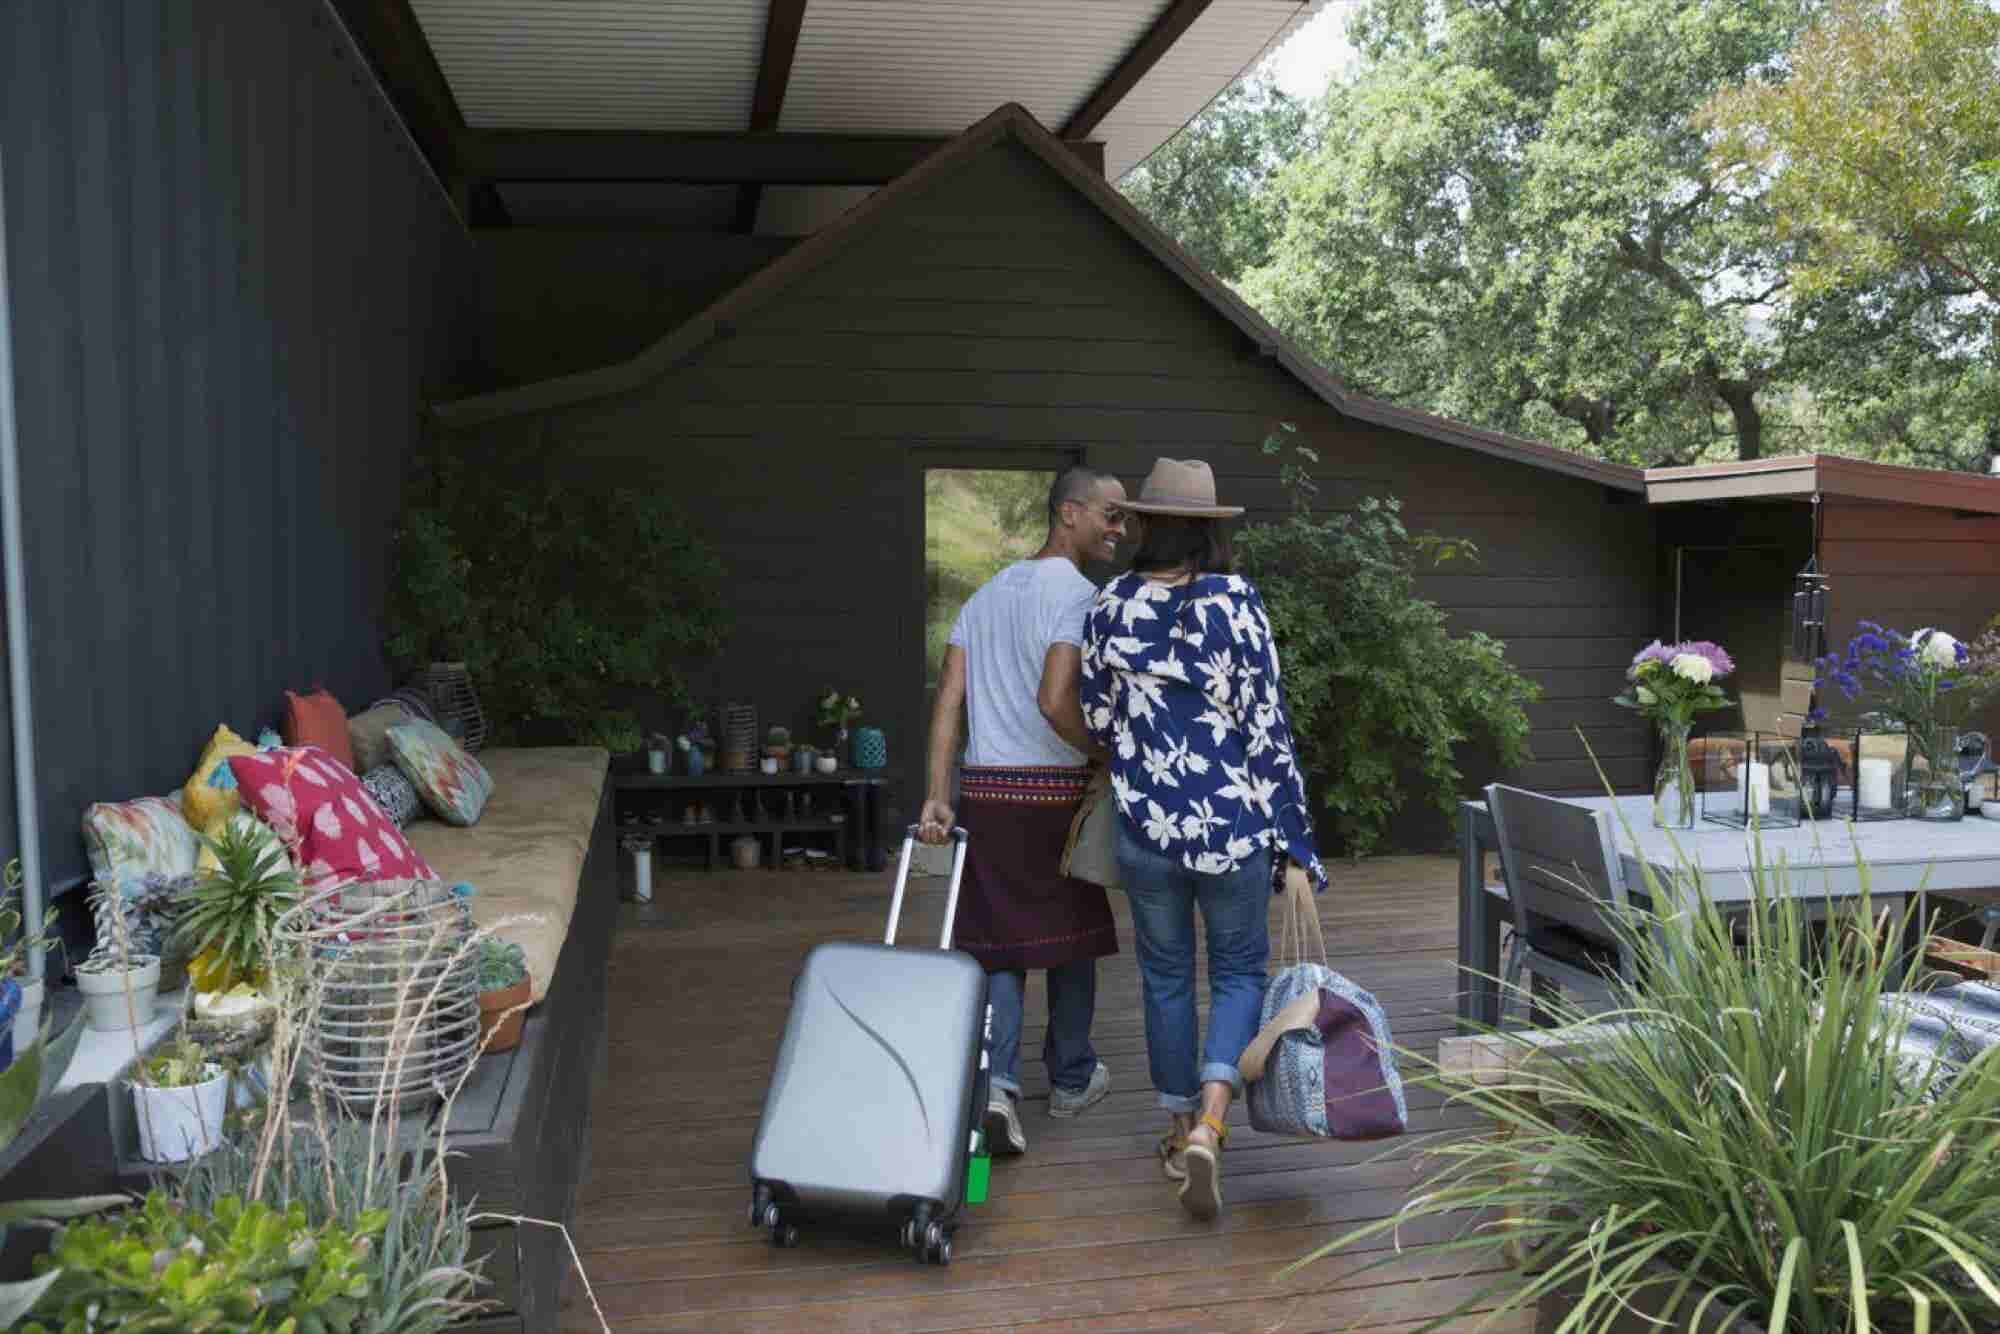 3 Simple Steps to Turn Your Rental Into a Vacationer's Favorite Memory